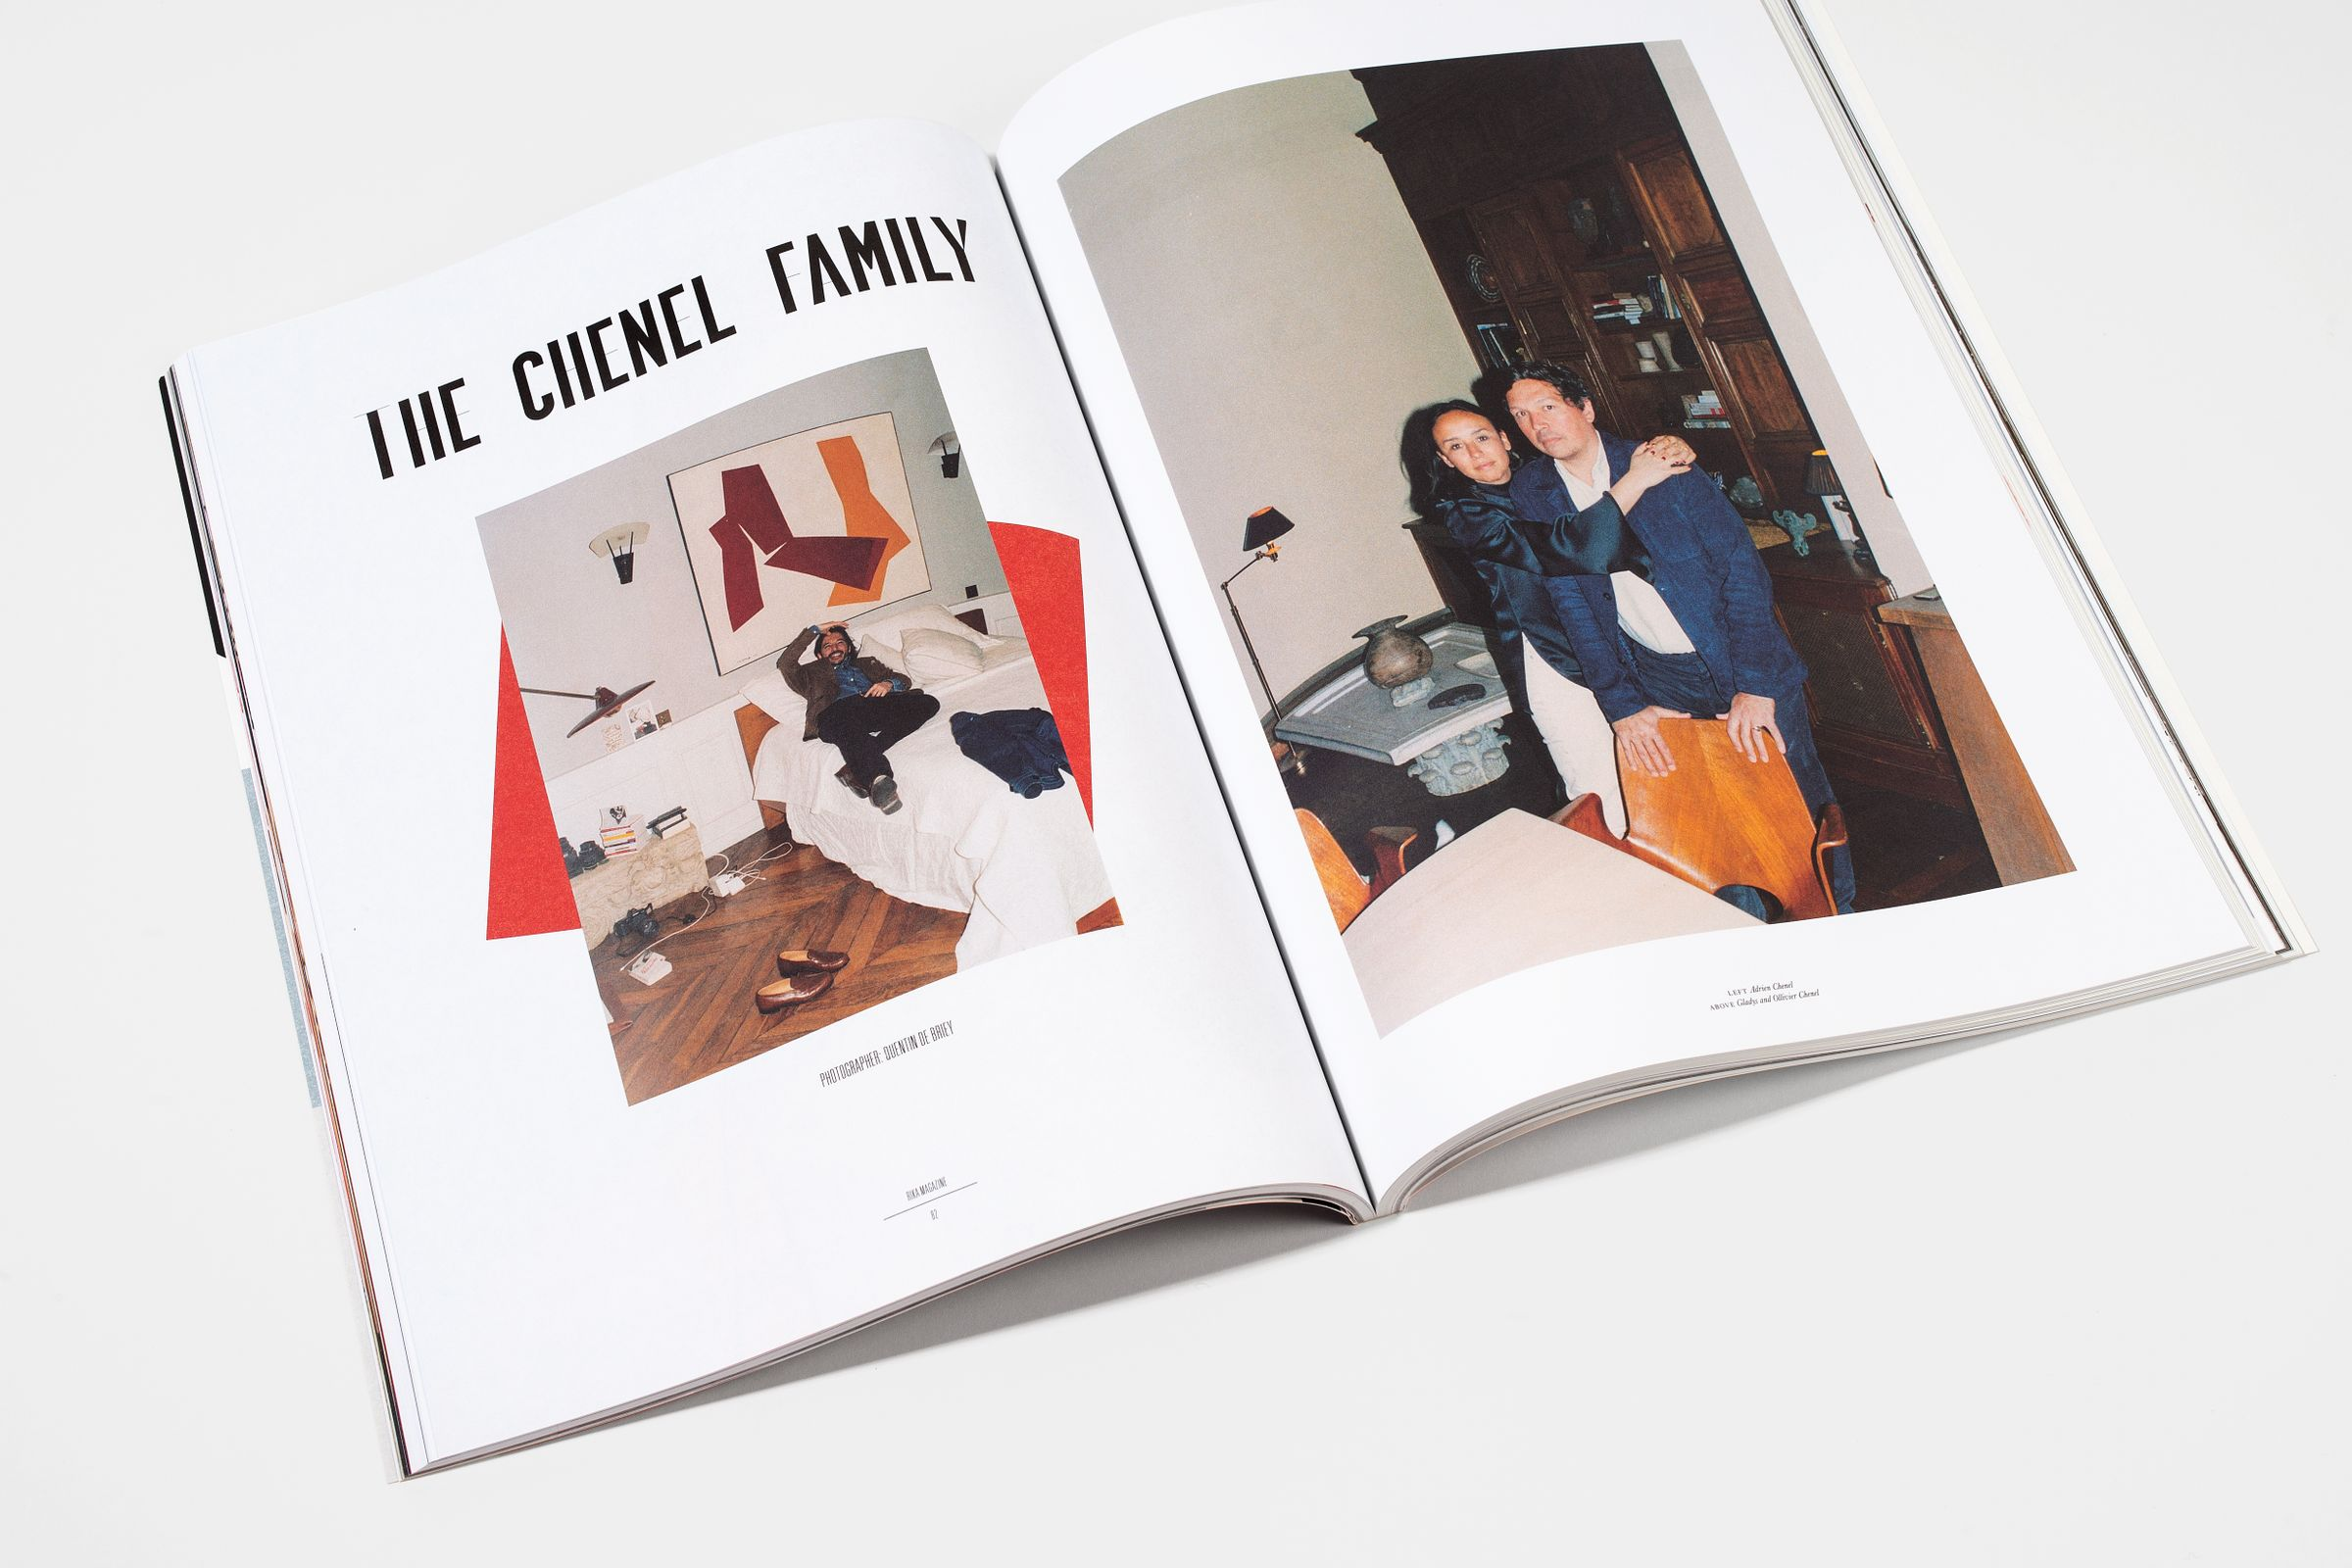 Rika Magazine issue no. 19 The Chenel Family photographed by Quentin de Briey